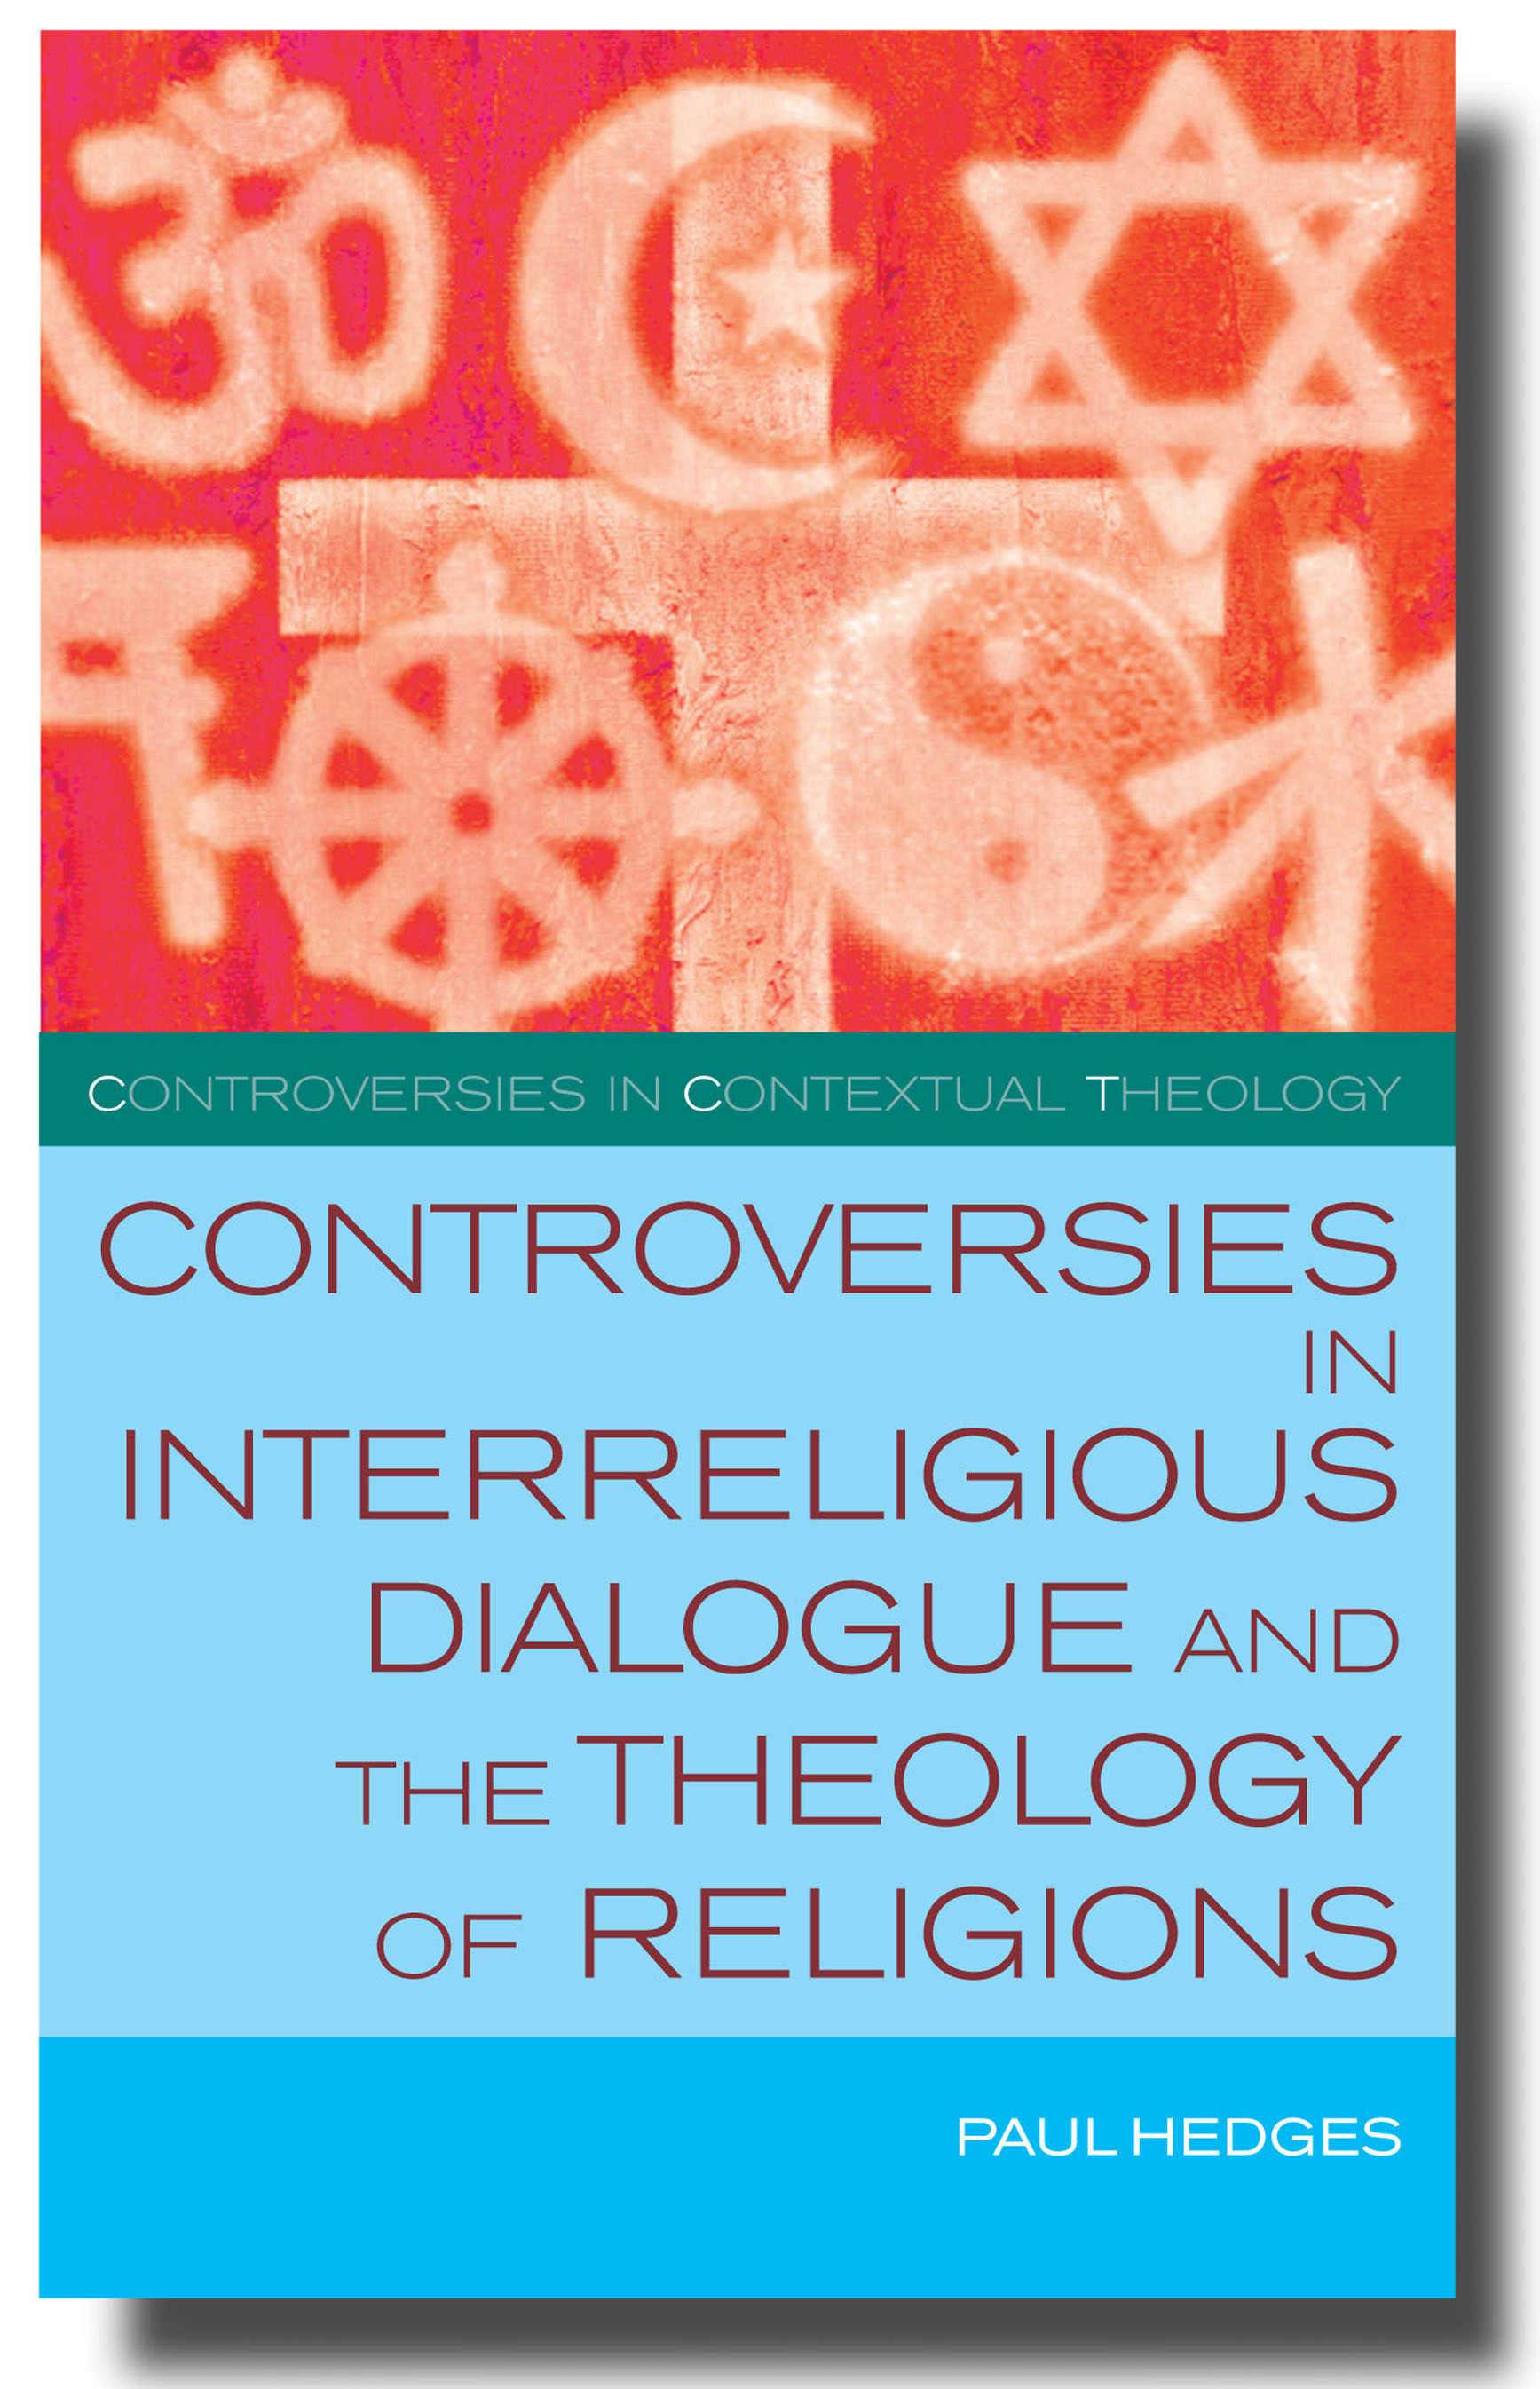 Controversies in Interreligious Dialogue and the Theology of Religions